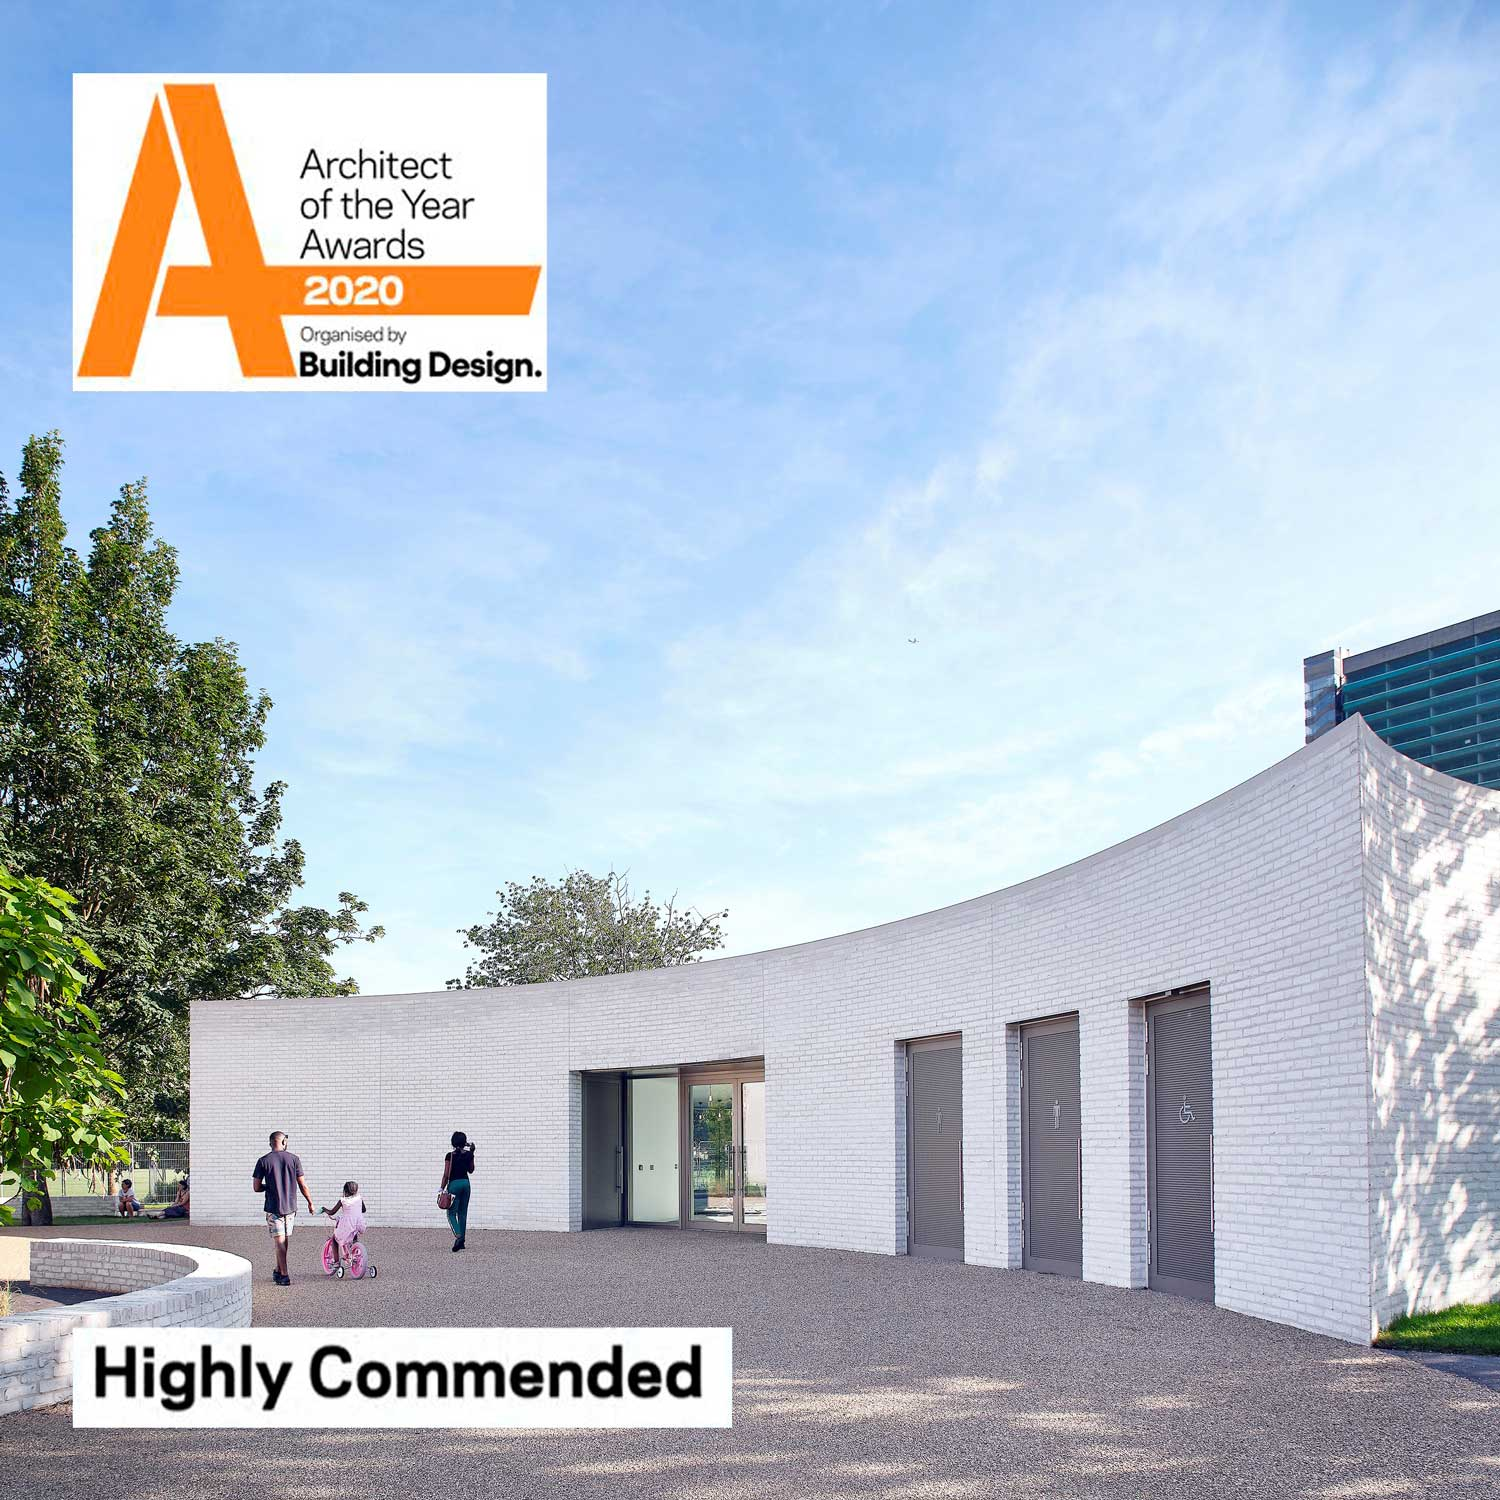 Highly Commended in Architect of the Year Awards